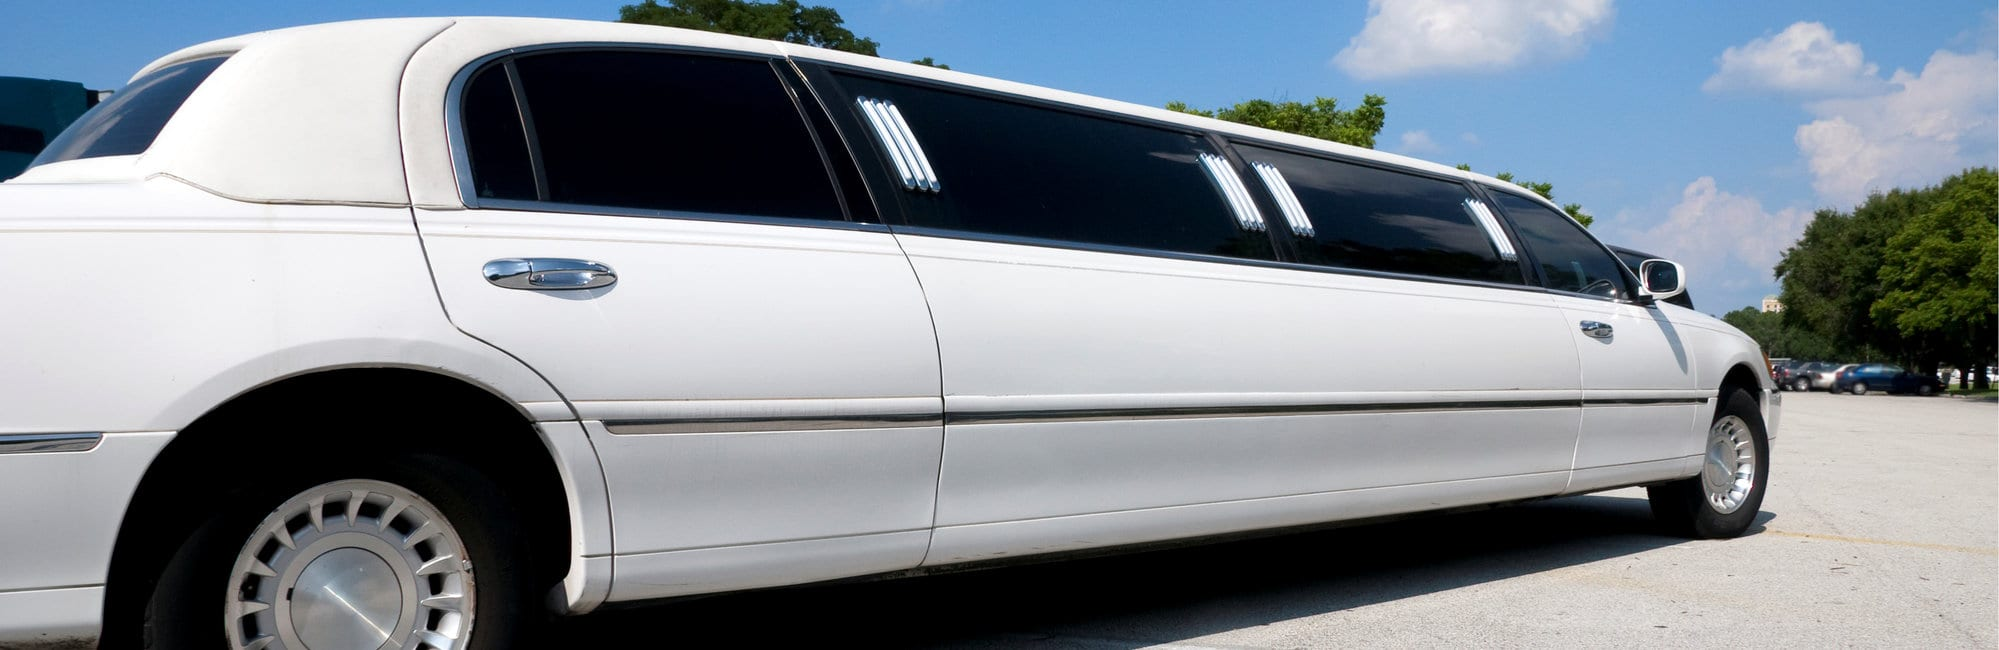 Black Stretch limousine waiting for guests to arrive